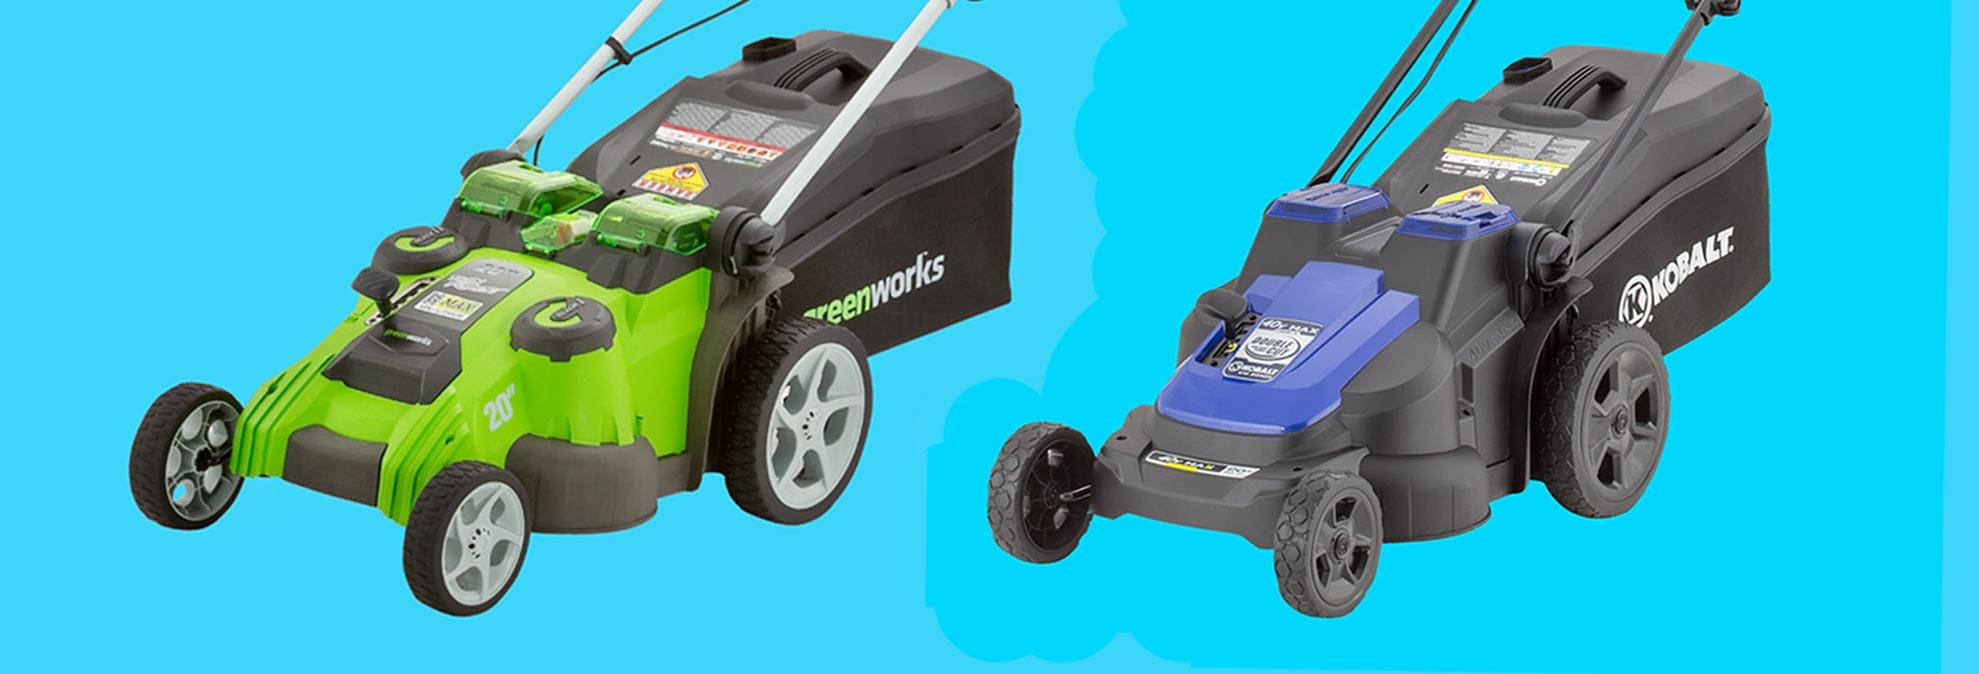 Greenworks and Kobalt Electric Push Mowers Recalled - Consumer Reports